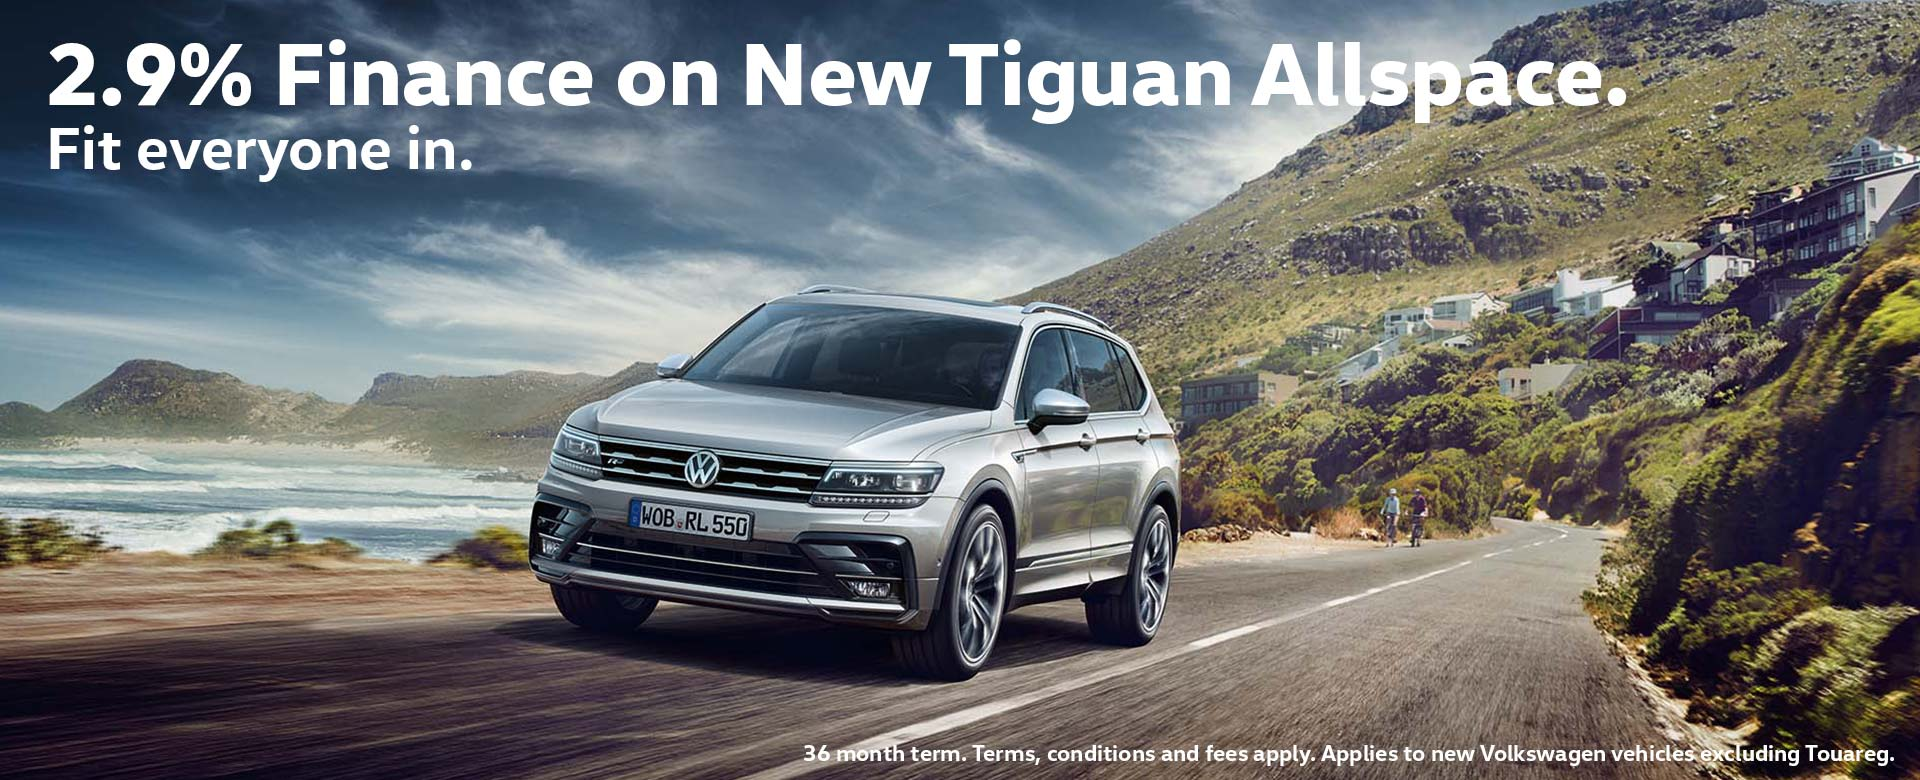 2.9% Finance on Tiguan Allspace